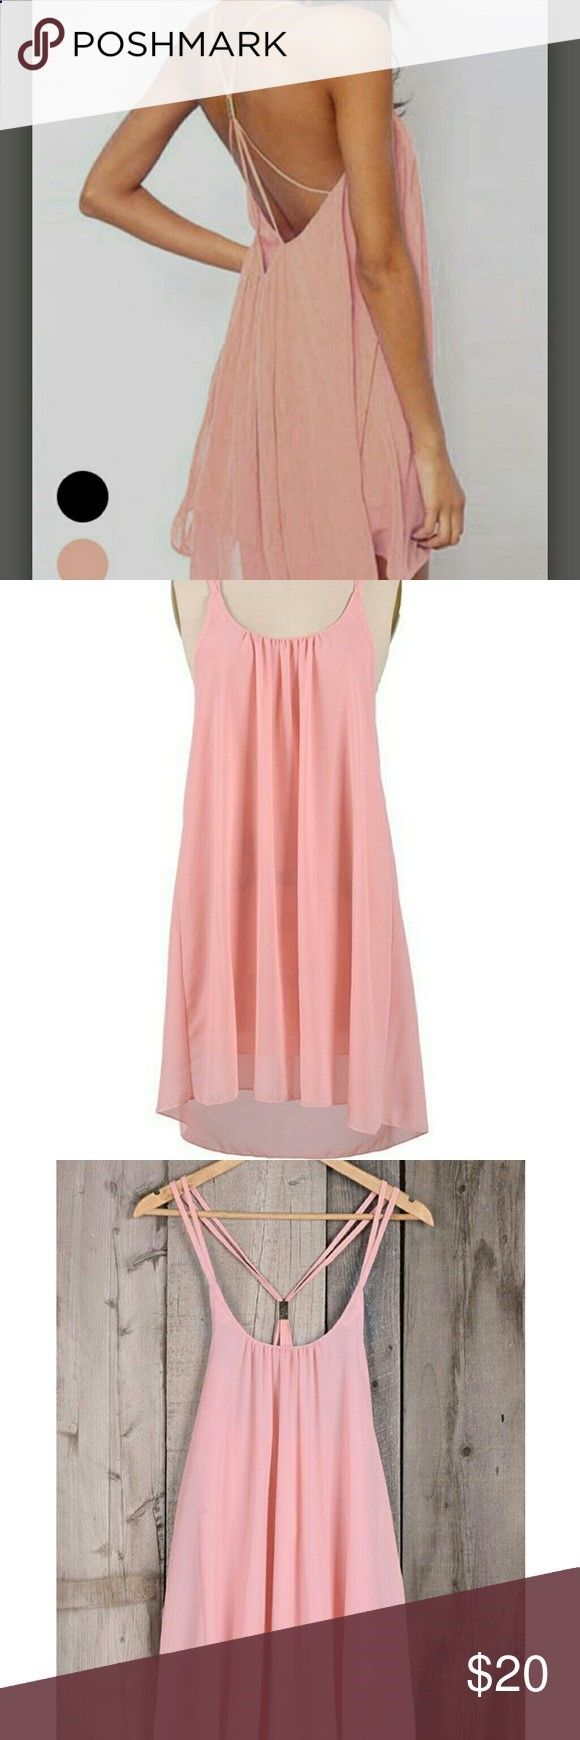 Clothes for Romantic Night - Clothes for Romantic Night - Open back chiffon slip dress Gorgeous back cut out! Soft pink chiffon dress with metal accent gathering the crisscross straps. I pulled it out of the package, steamed it, and tried it on, but has never otherwise been worn. Medium but the chest was a little tight on me. Great, romantic option for date night, a wedding, or a stroll on the beach! cupshe Dresses Mini - If you are planning an unforgettable night with your lover, you ...